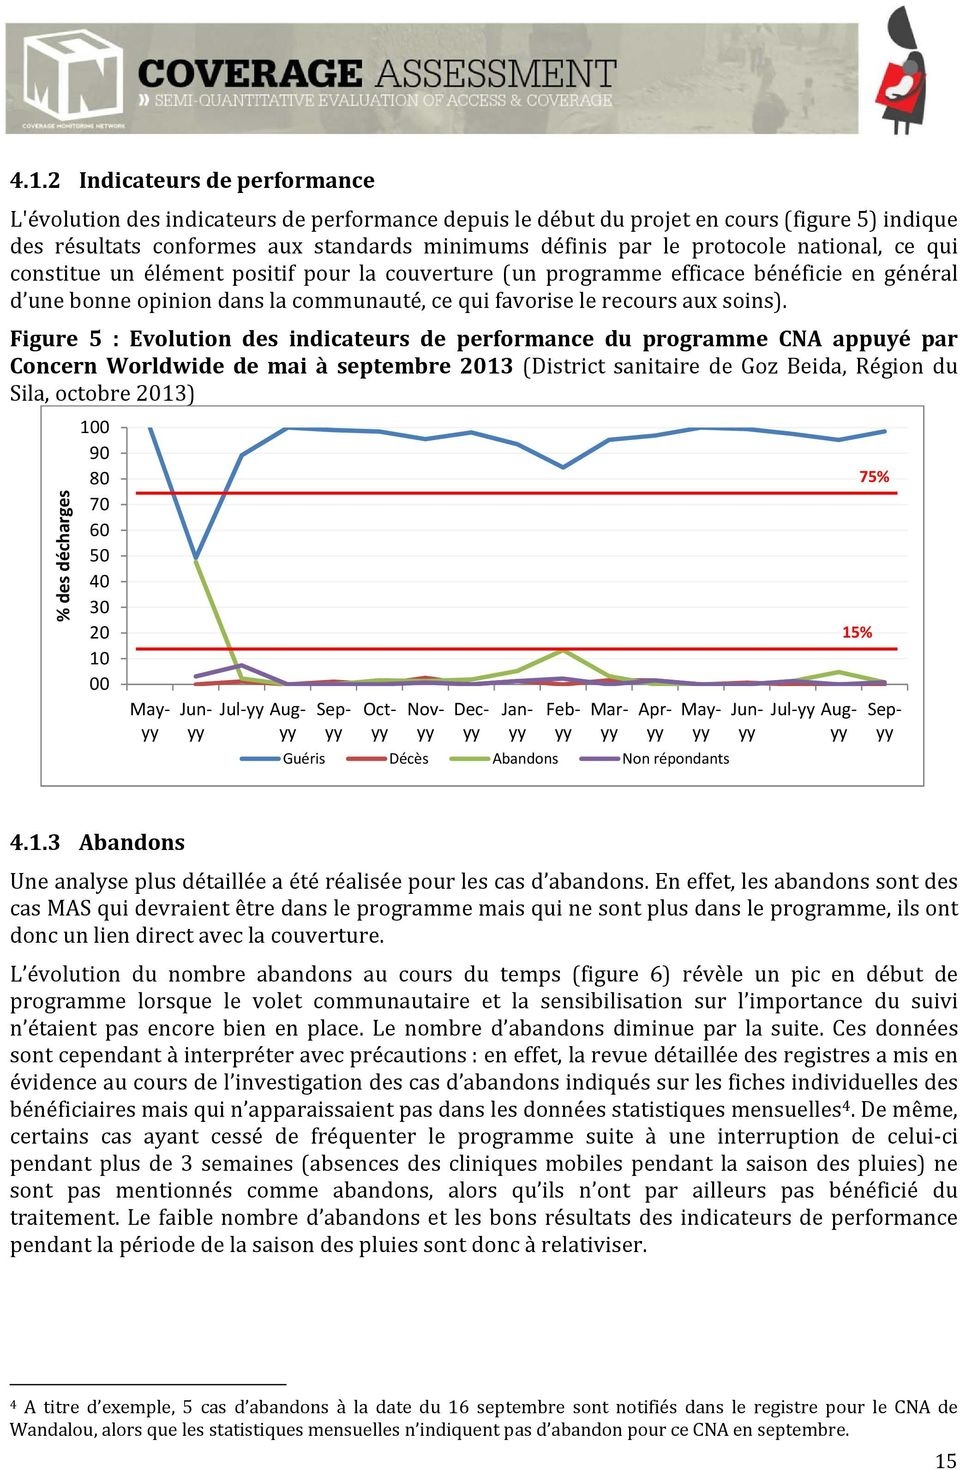 Figure 5 : Evolution des indicateurs de performance du programme CNA appuyé par Concern Worldwide de mai à septembre 2013 (District sanitaire de Goz Beida, Région du Sila, octobre 2013) % des